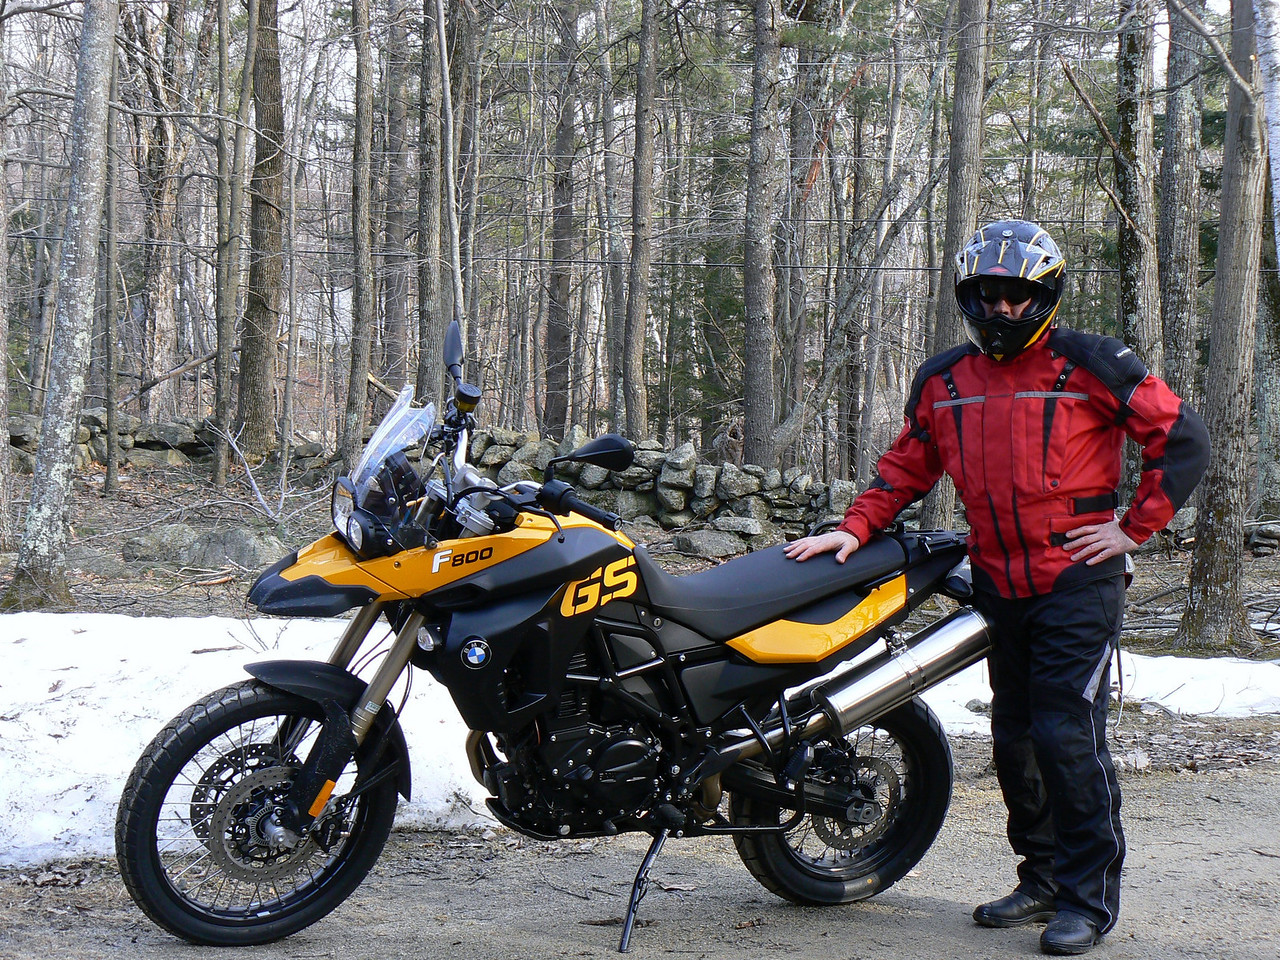 March 2009: My new 2009 BMW F800GS!